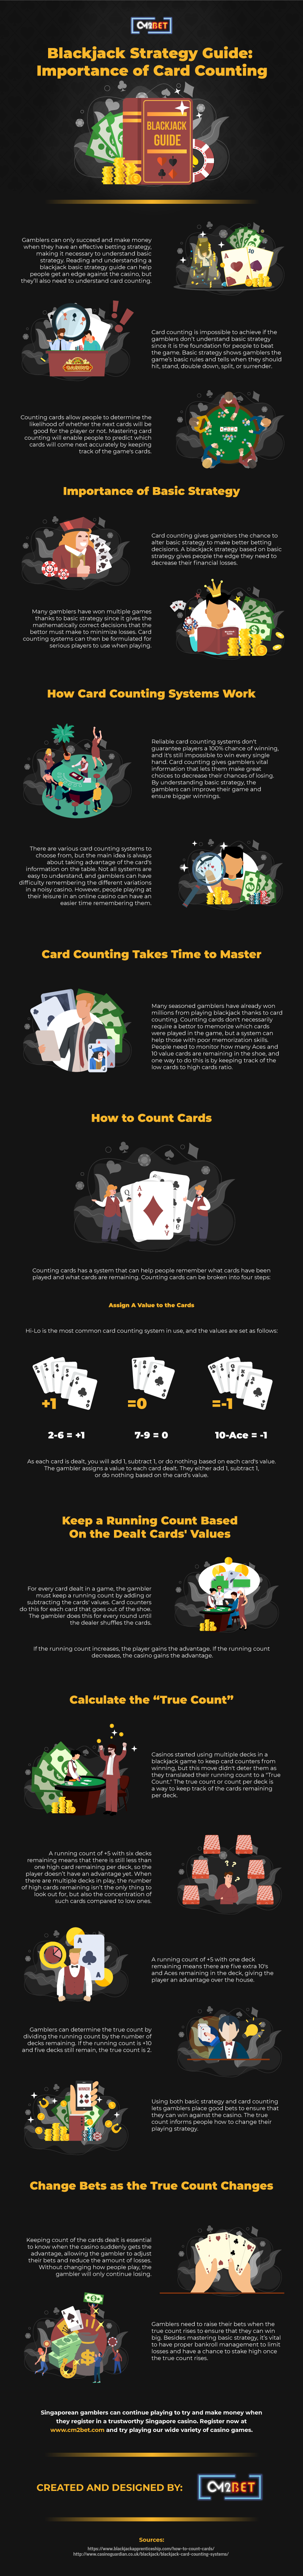 Blackjack Strategy Guide Importance of Card Counting